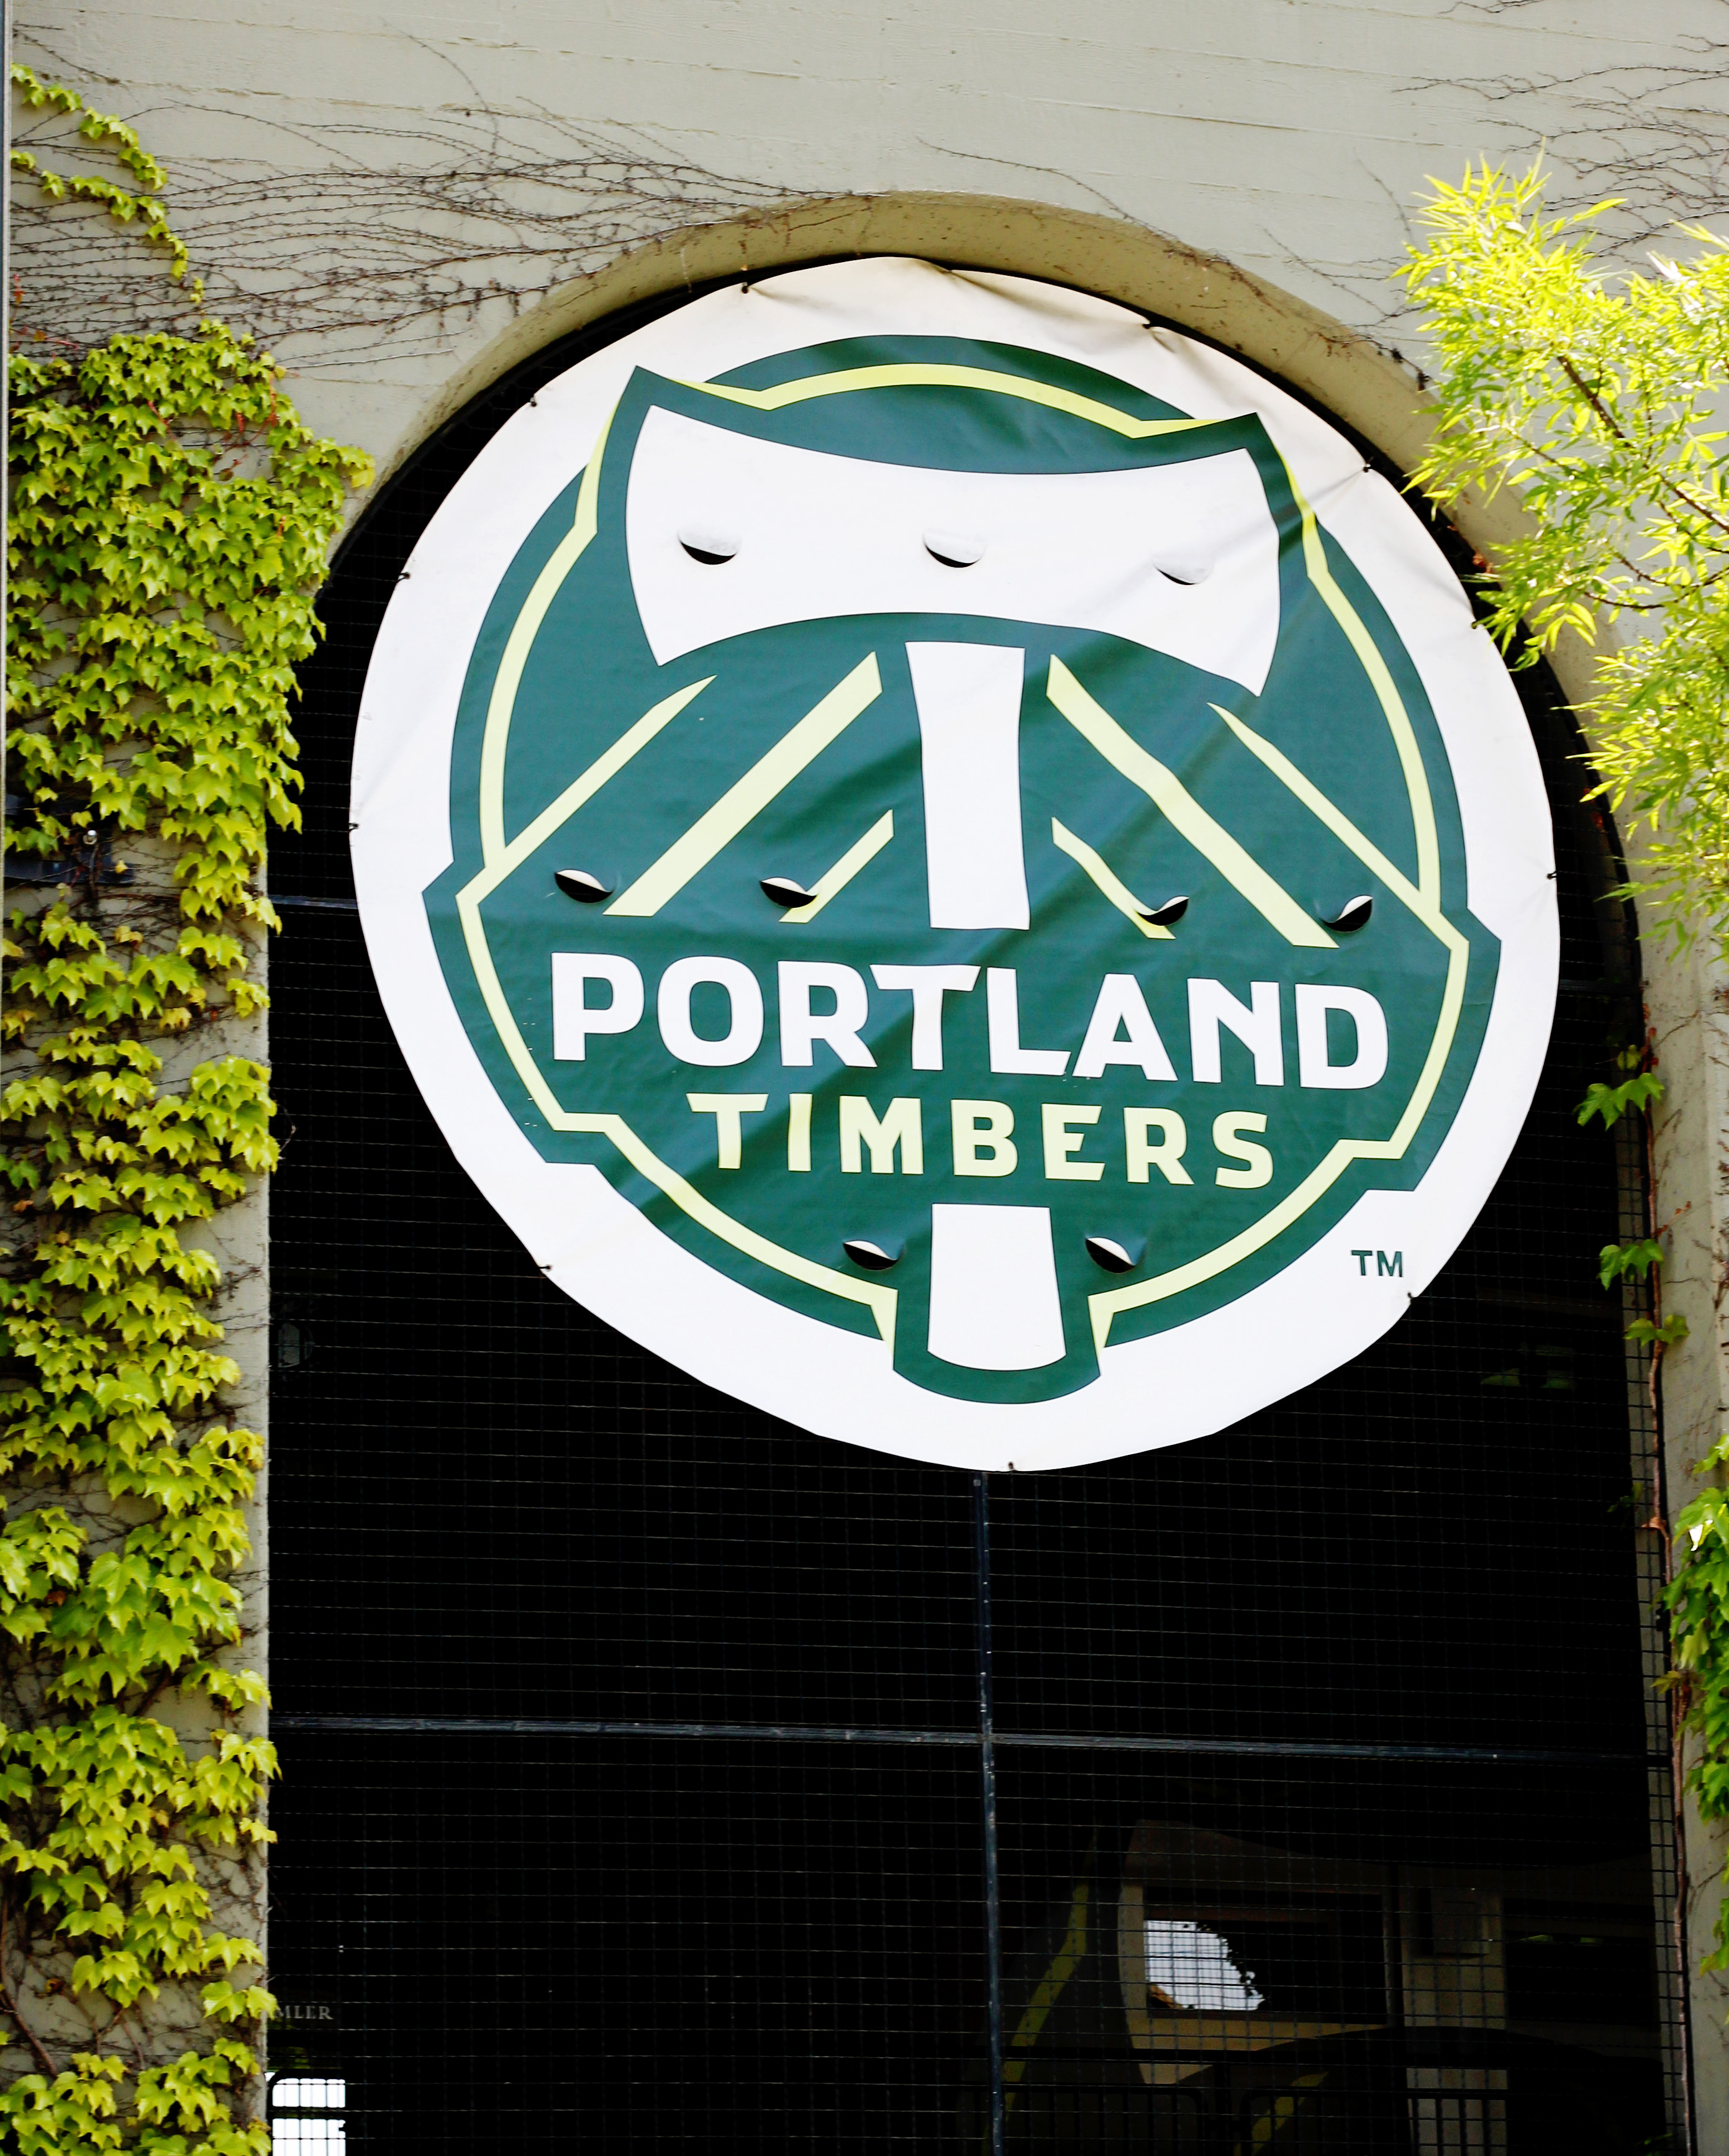 Portland Timbers: In Pursuit Of Adventure